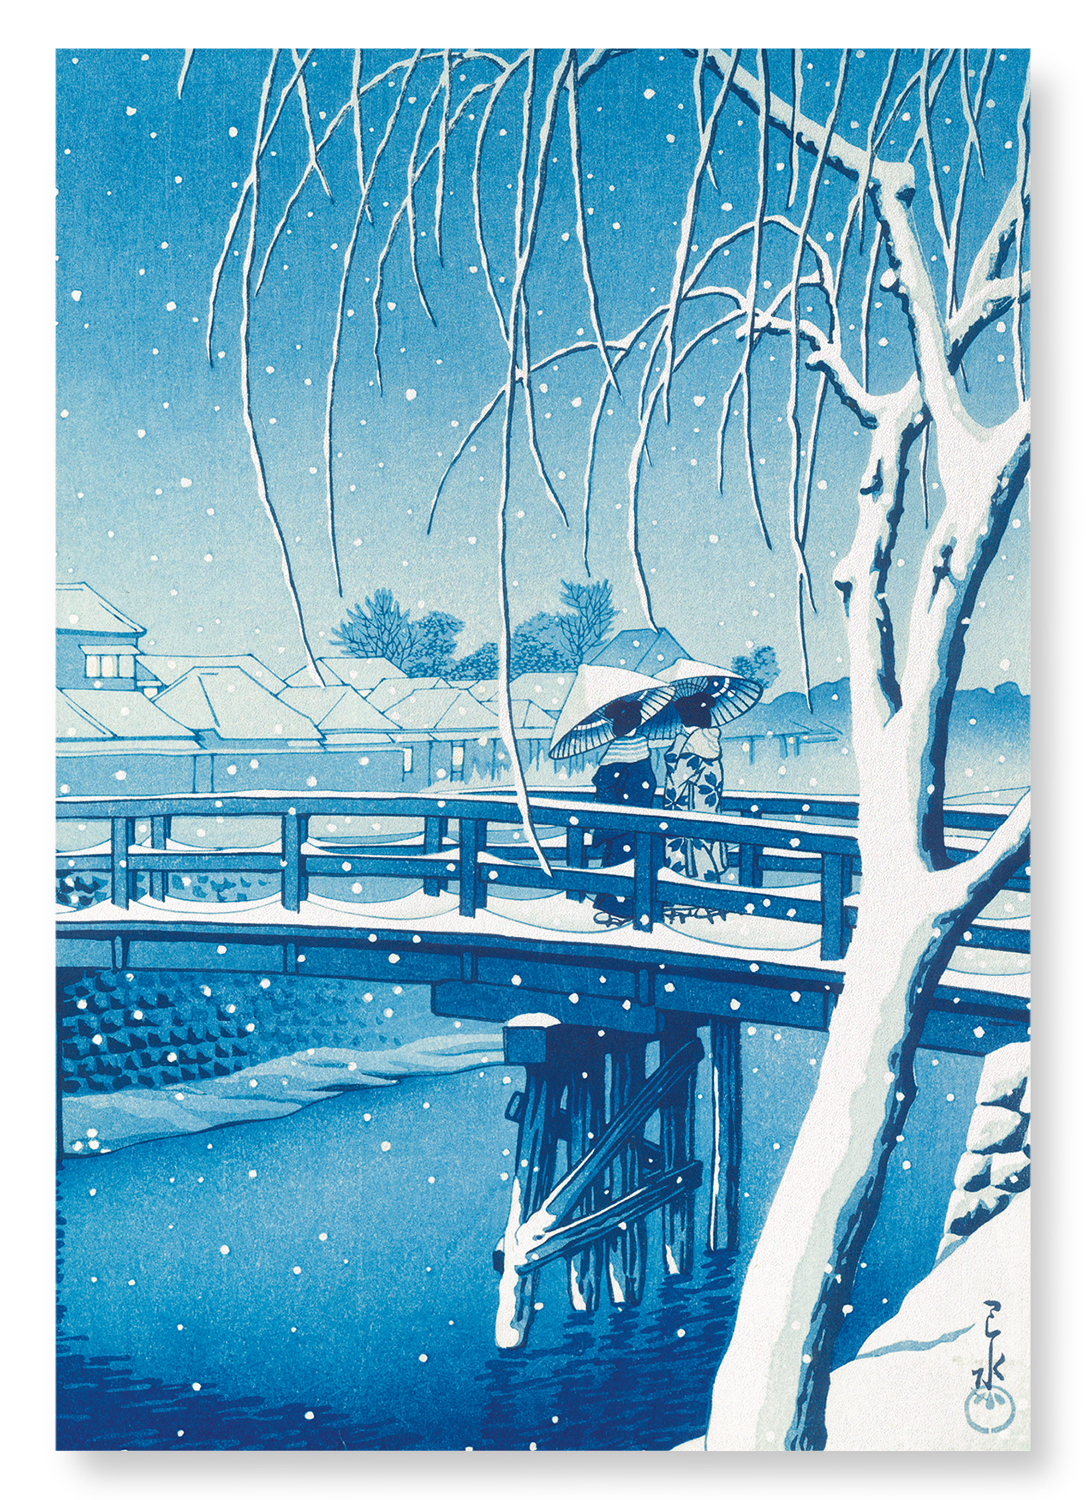 Bridge over edo river: 2xPrints